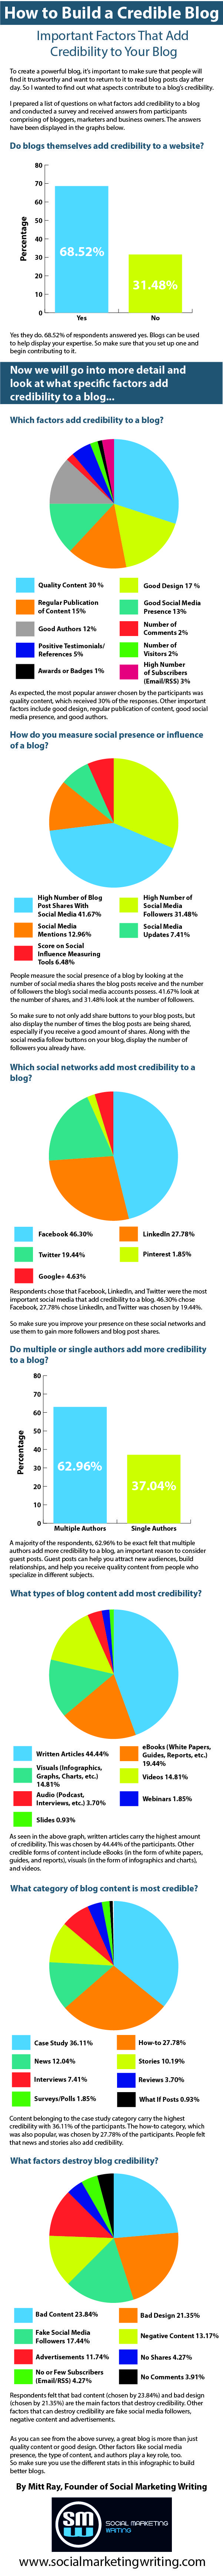 How to Build a Credible Blog [Infographic] http://socialmarketingwriting.com/how-to-build-a-credible-blog-infographic/